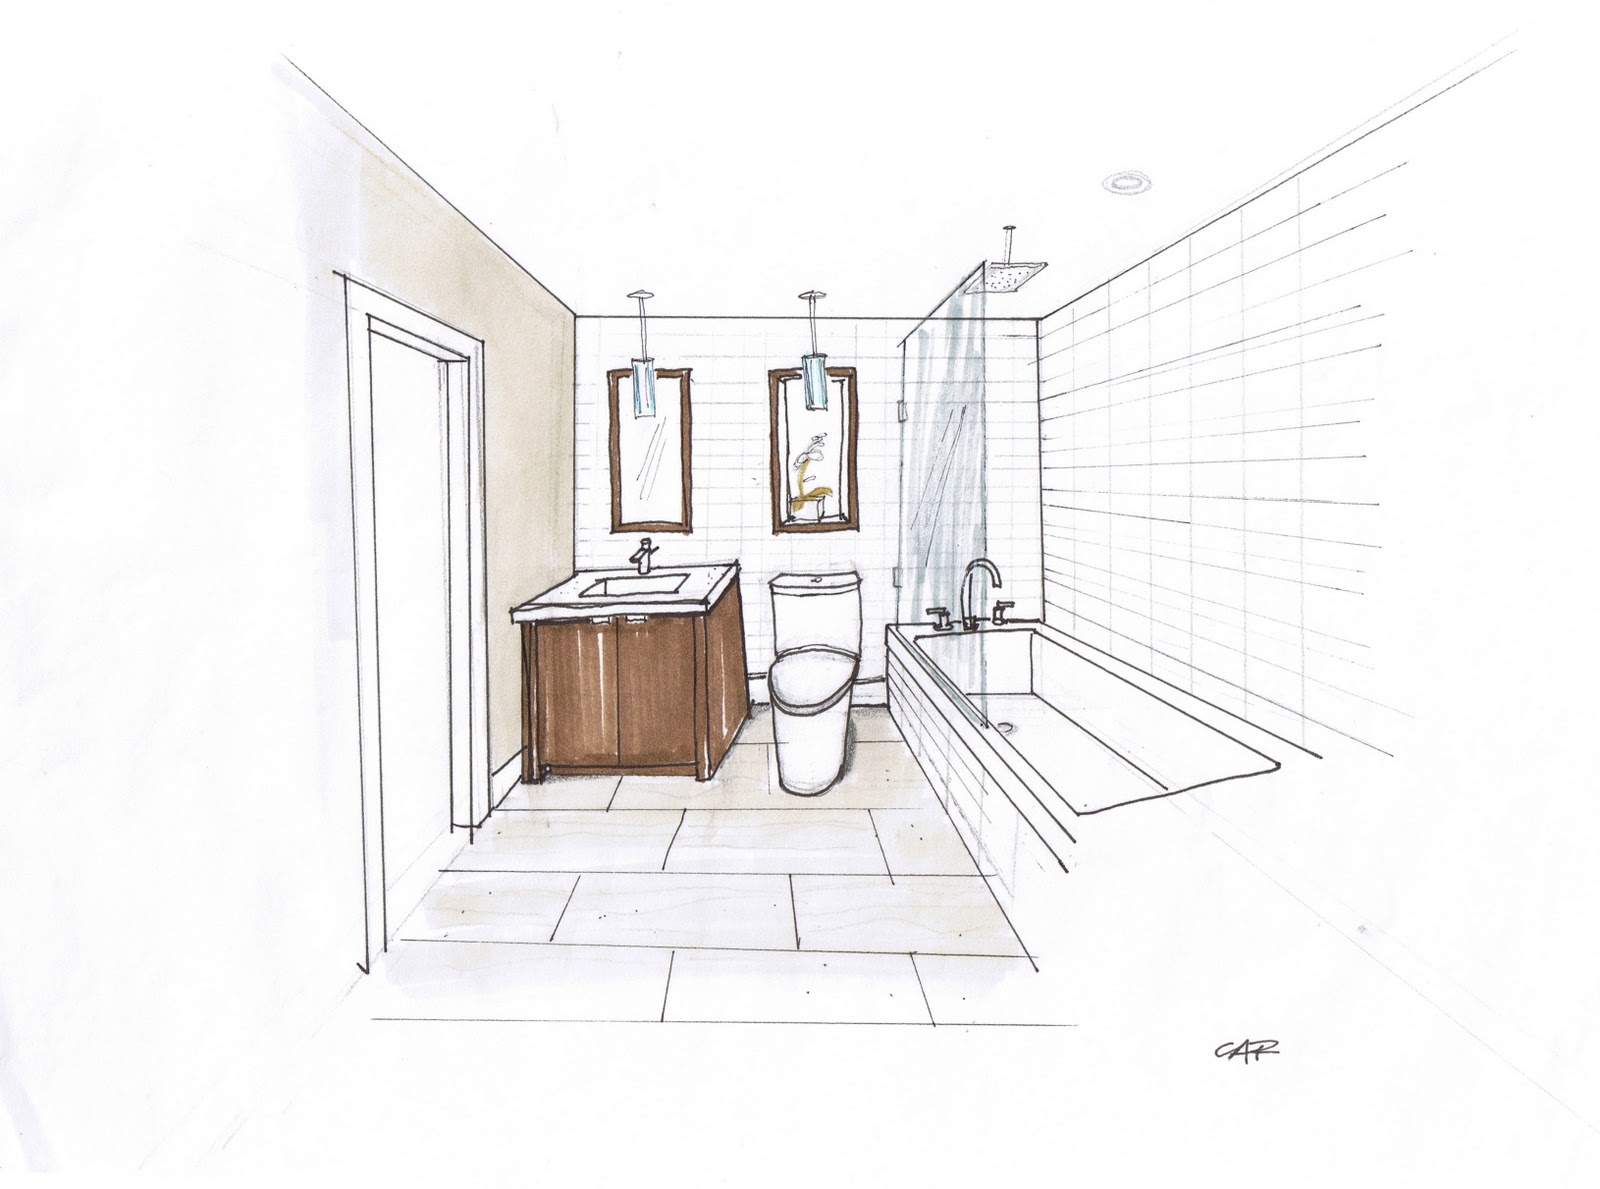 Creed january 2011 for Interior designs drawings